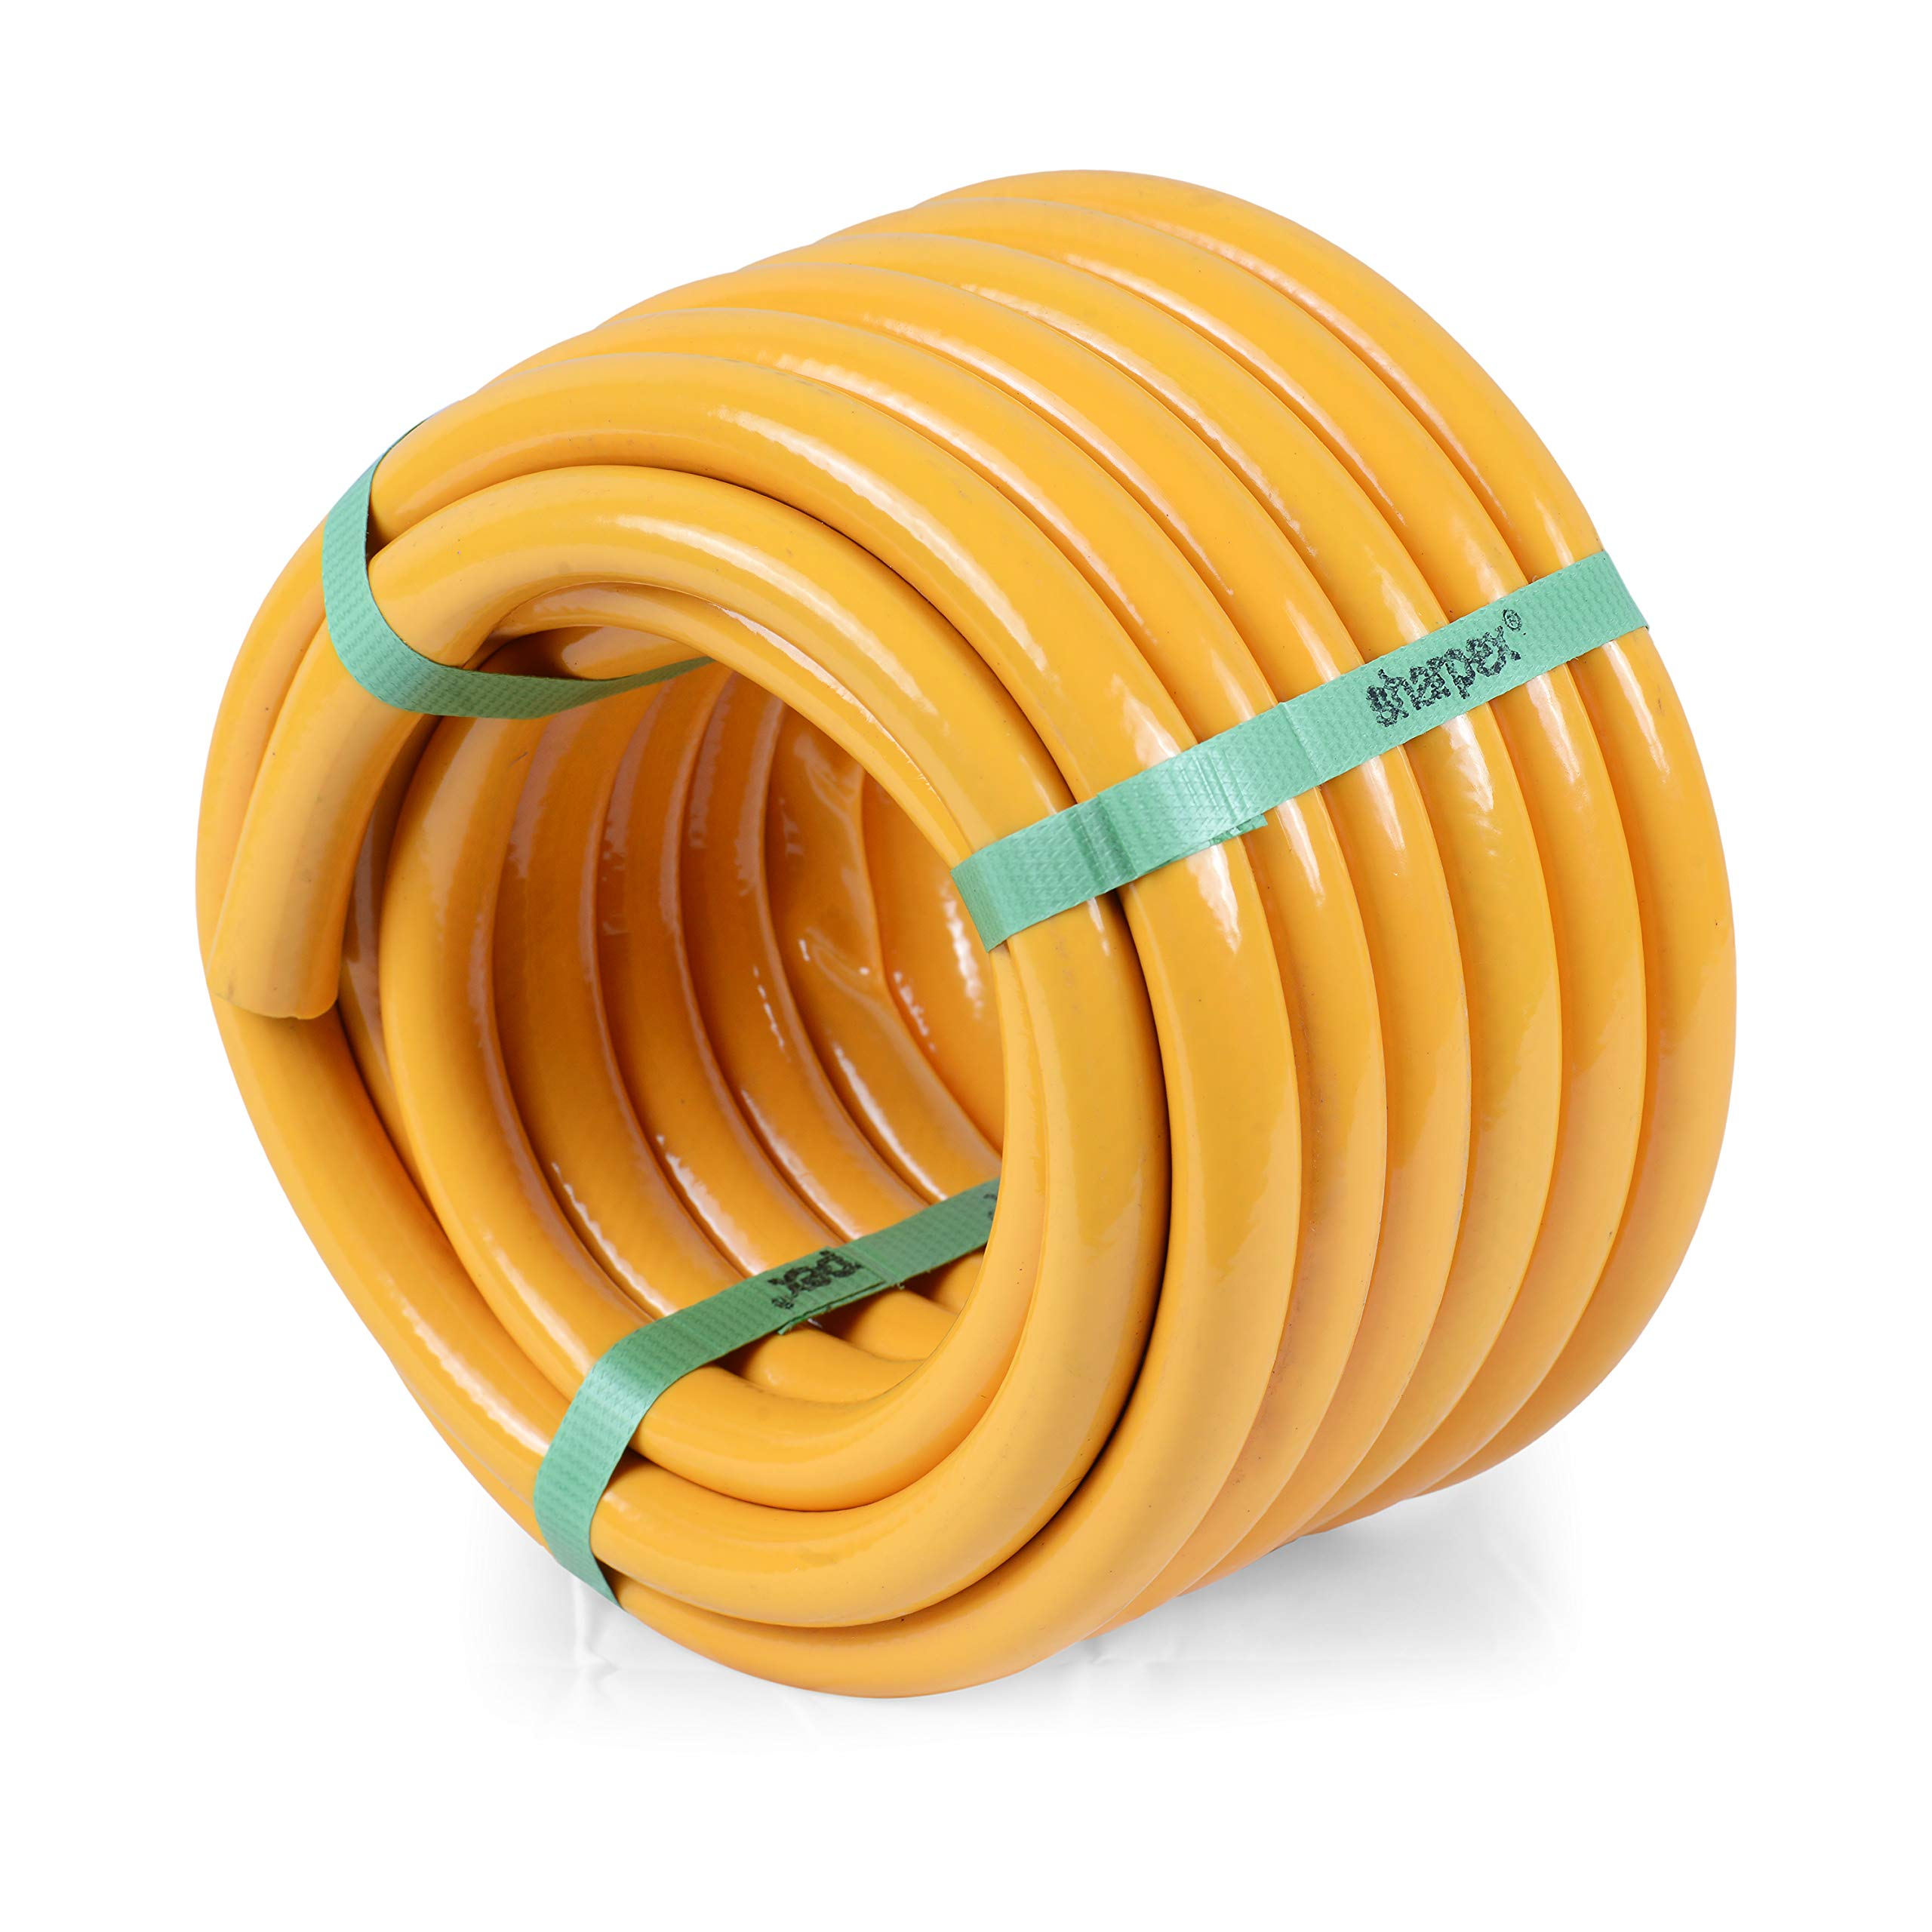 Sharpex Hybrid Inner Braided Water Hose Pipe for Garden, Outdoor, Hotel and Backyard Hose Pipe - 0.5 Inch / 10 MT product image